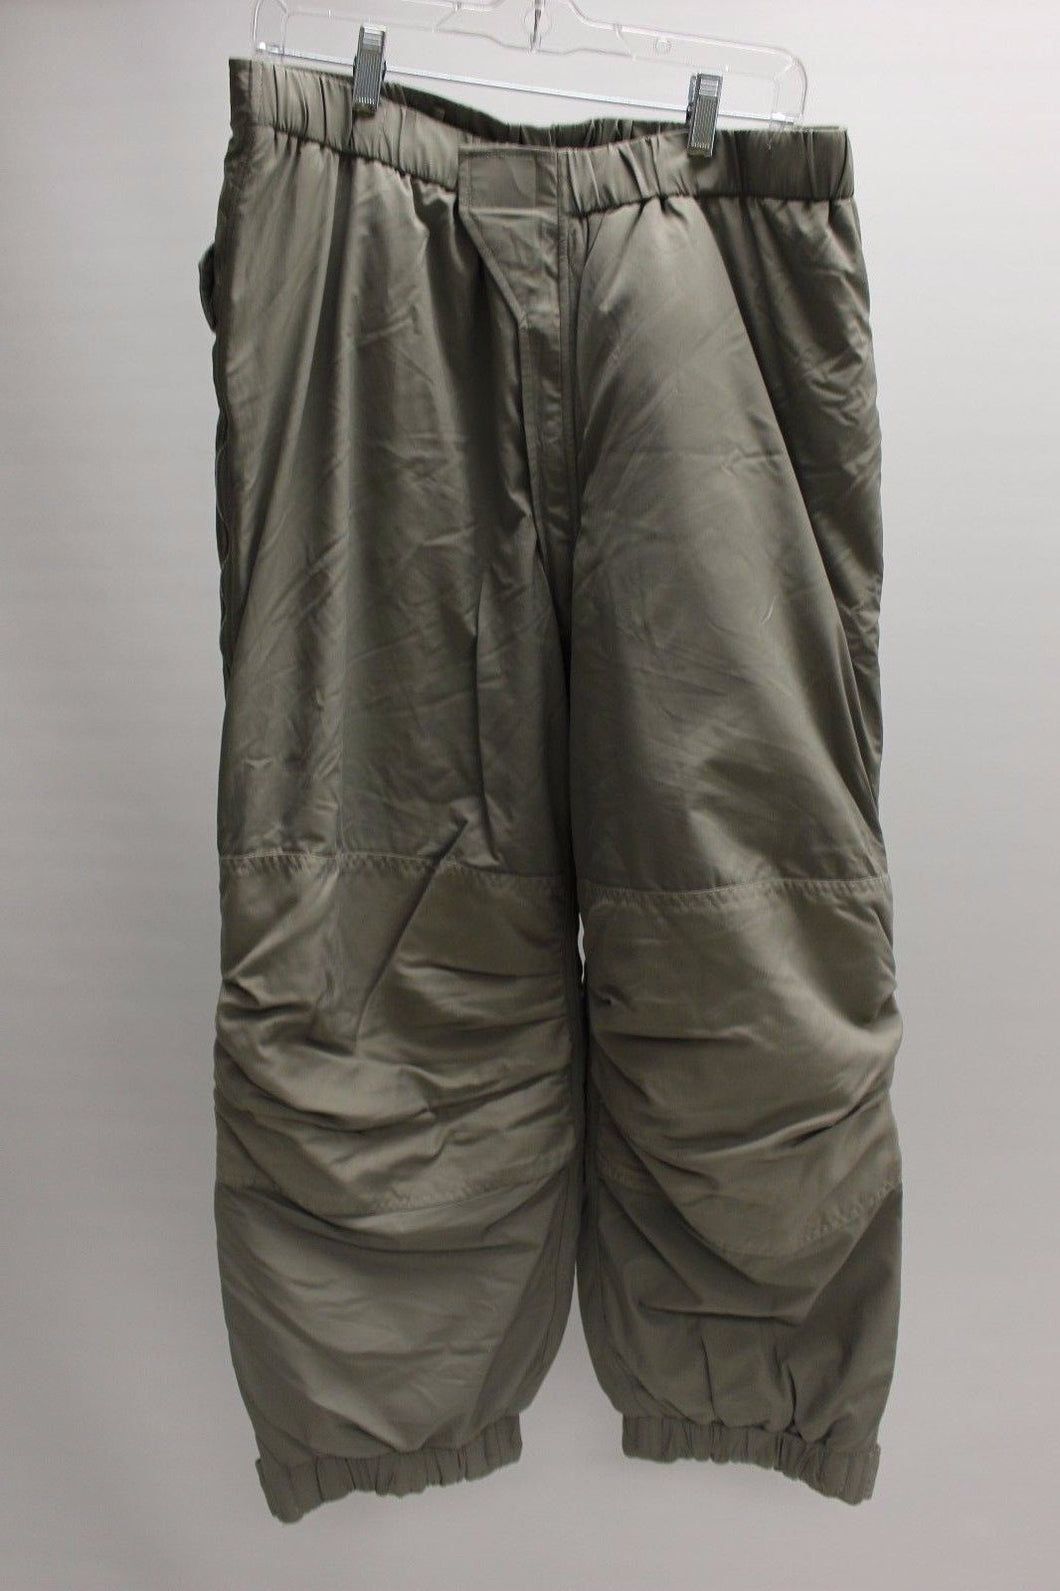 Gen III Extreme Cold Weather Trousers, Large Regular, 8415-01-538-6704, Used